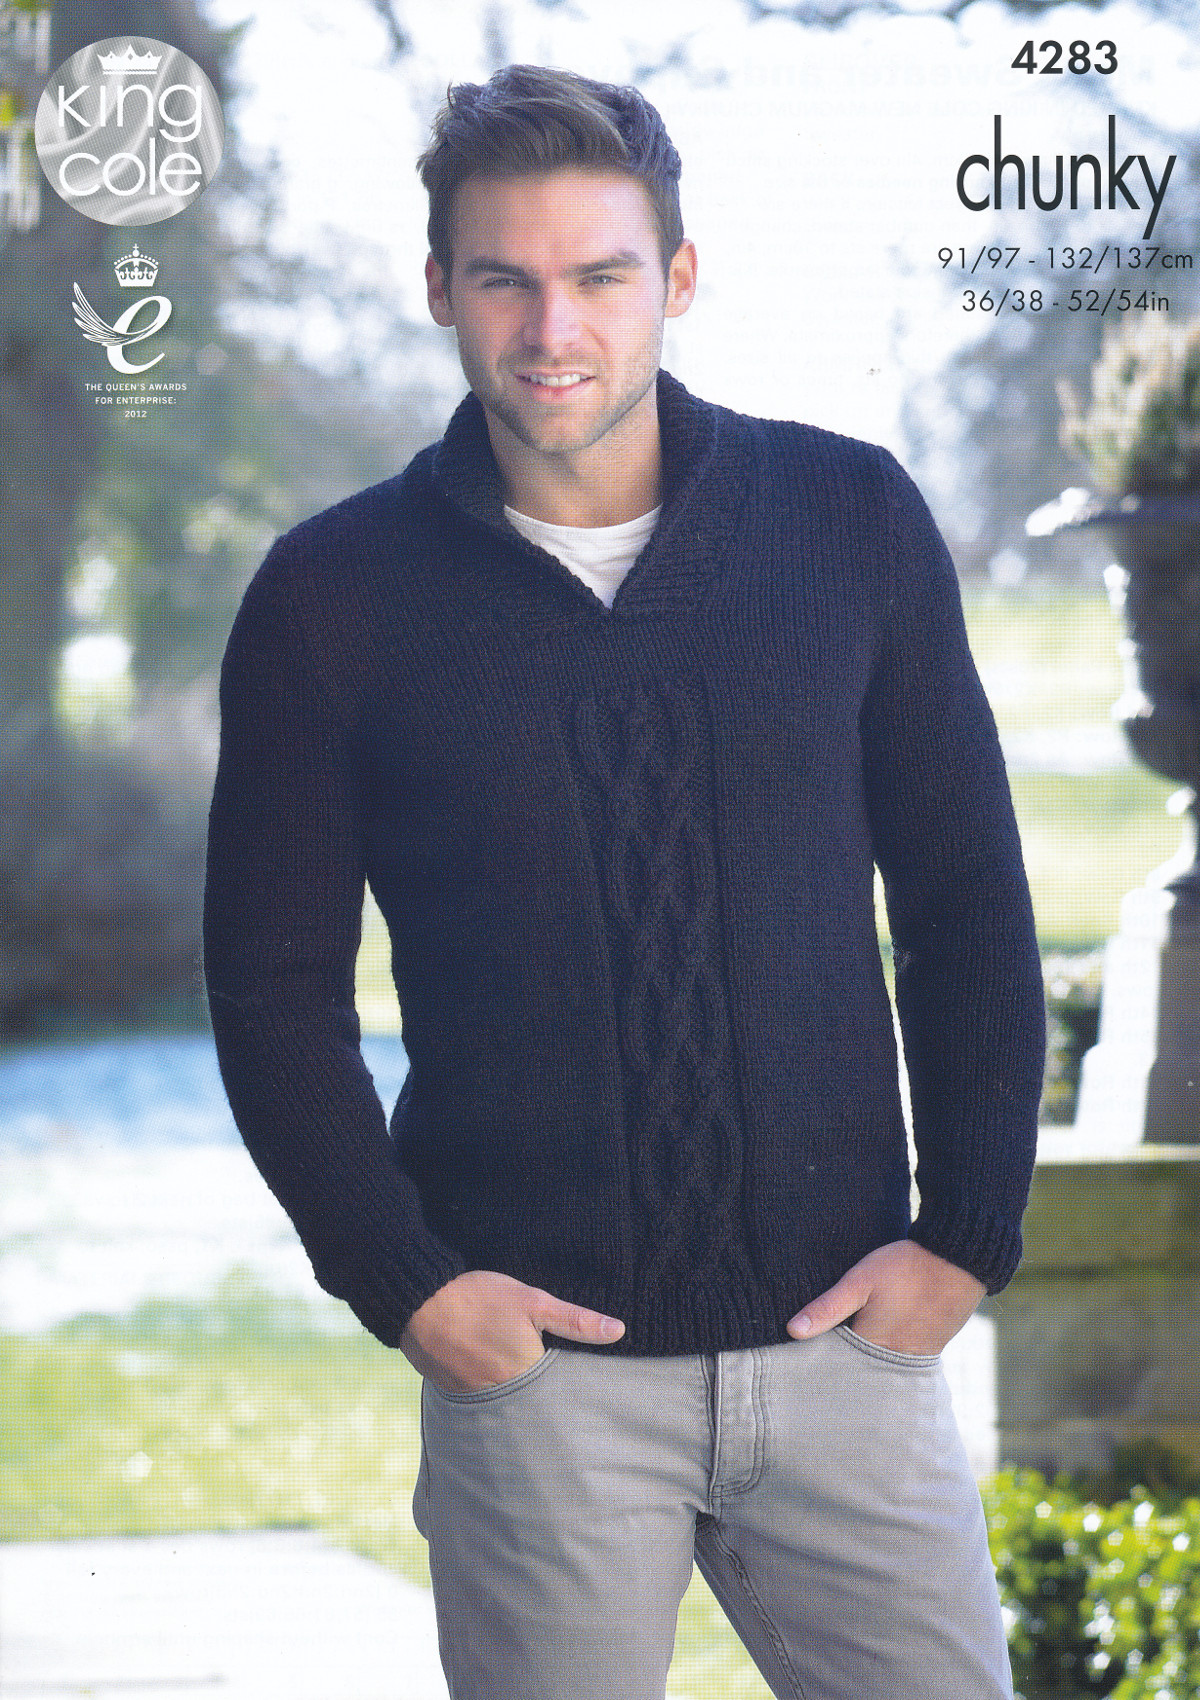 King Cole Magnum Chunky Knitting Pattern Mens Cable Detail Sweater ...